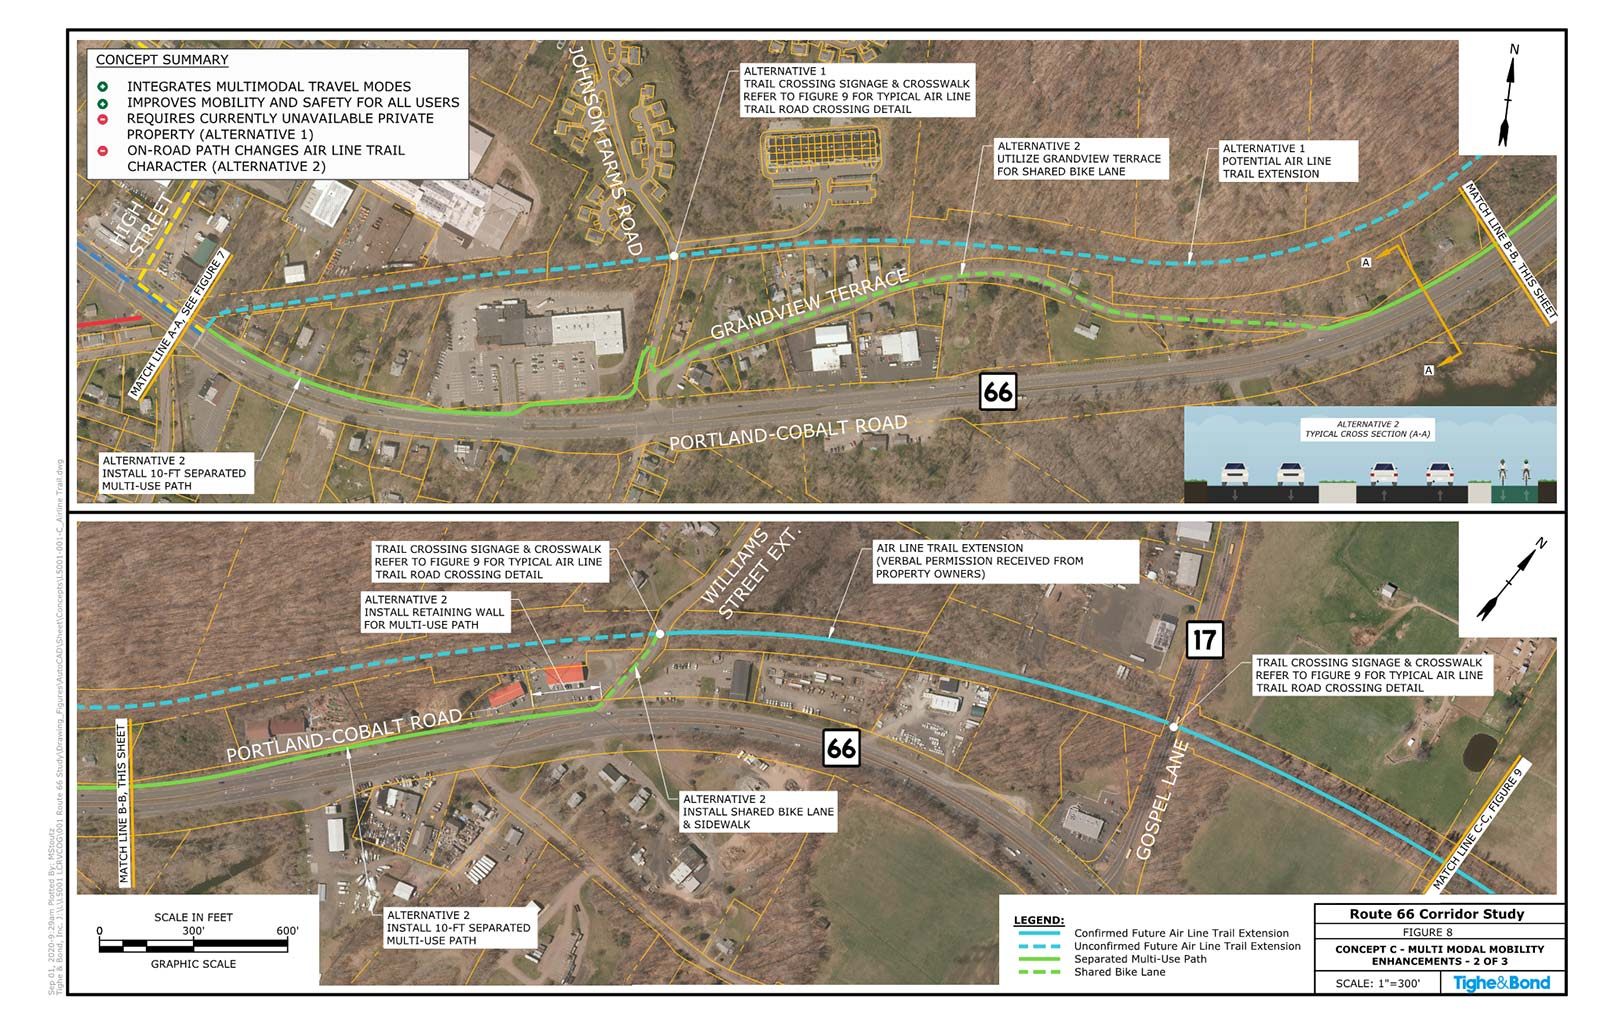 Multi-Modal Mobility Enhancements (Concept C). Route 66 Transportation Study, Portland and East Hampton, CT.